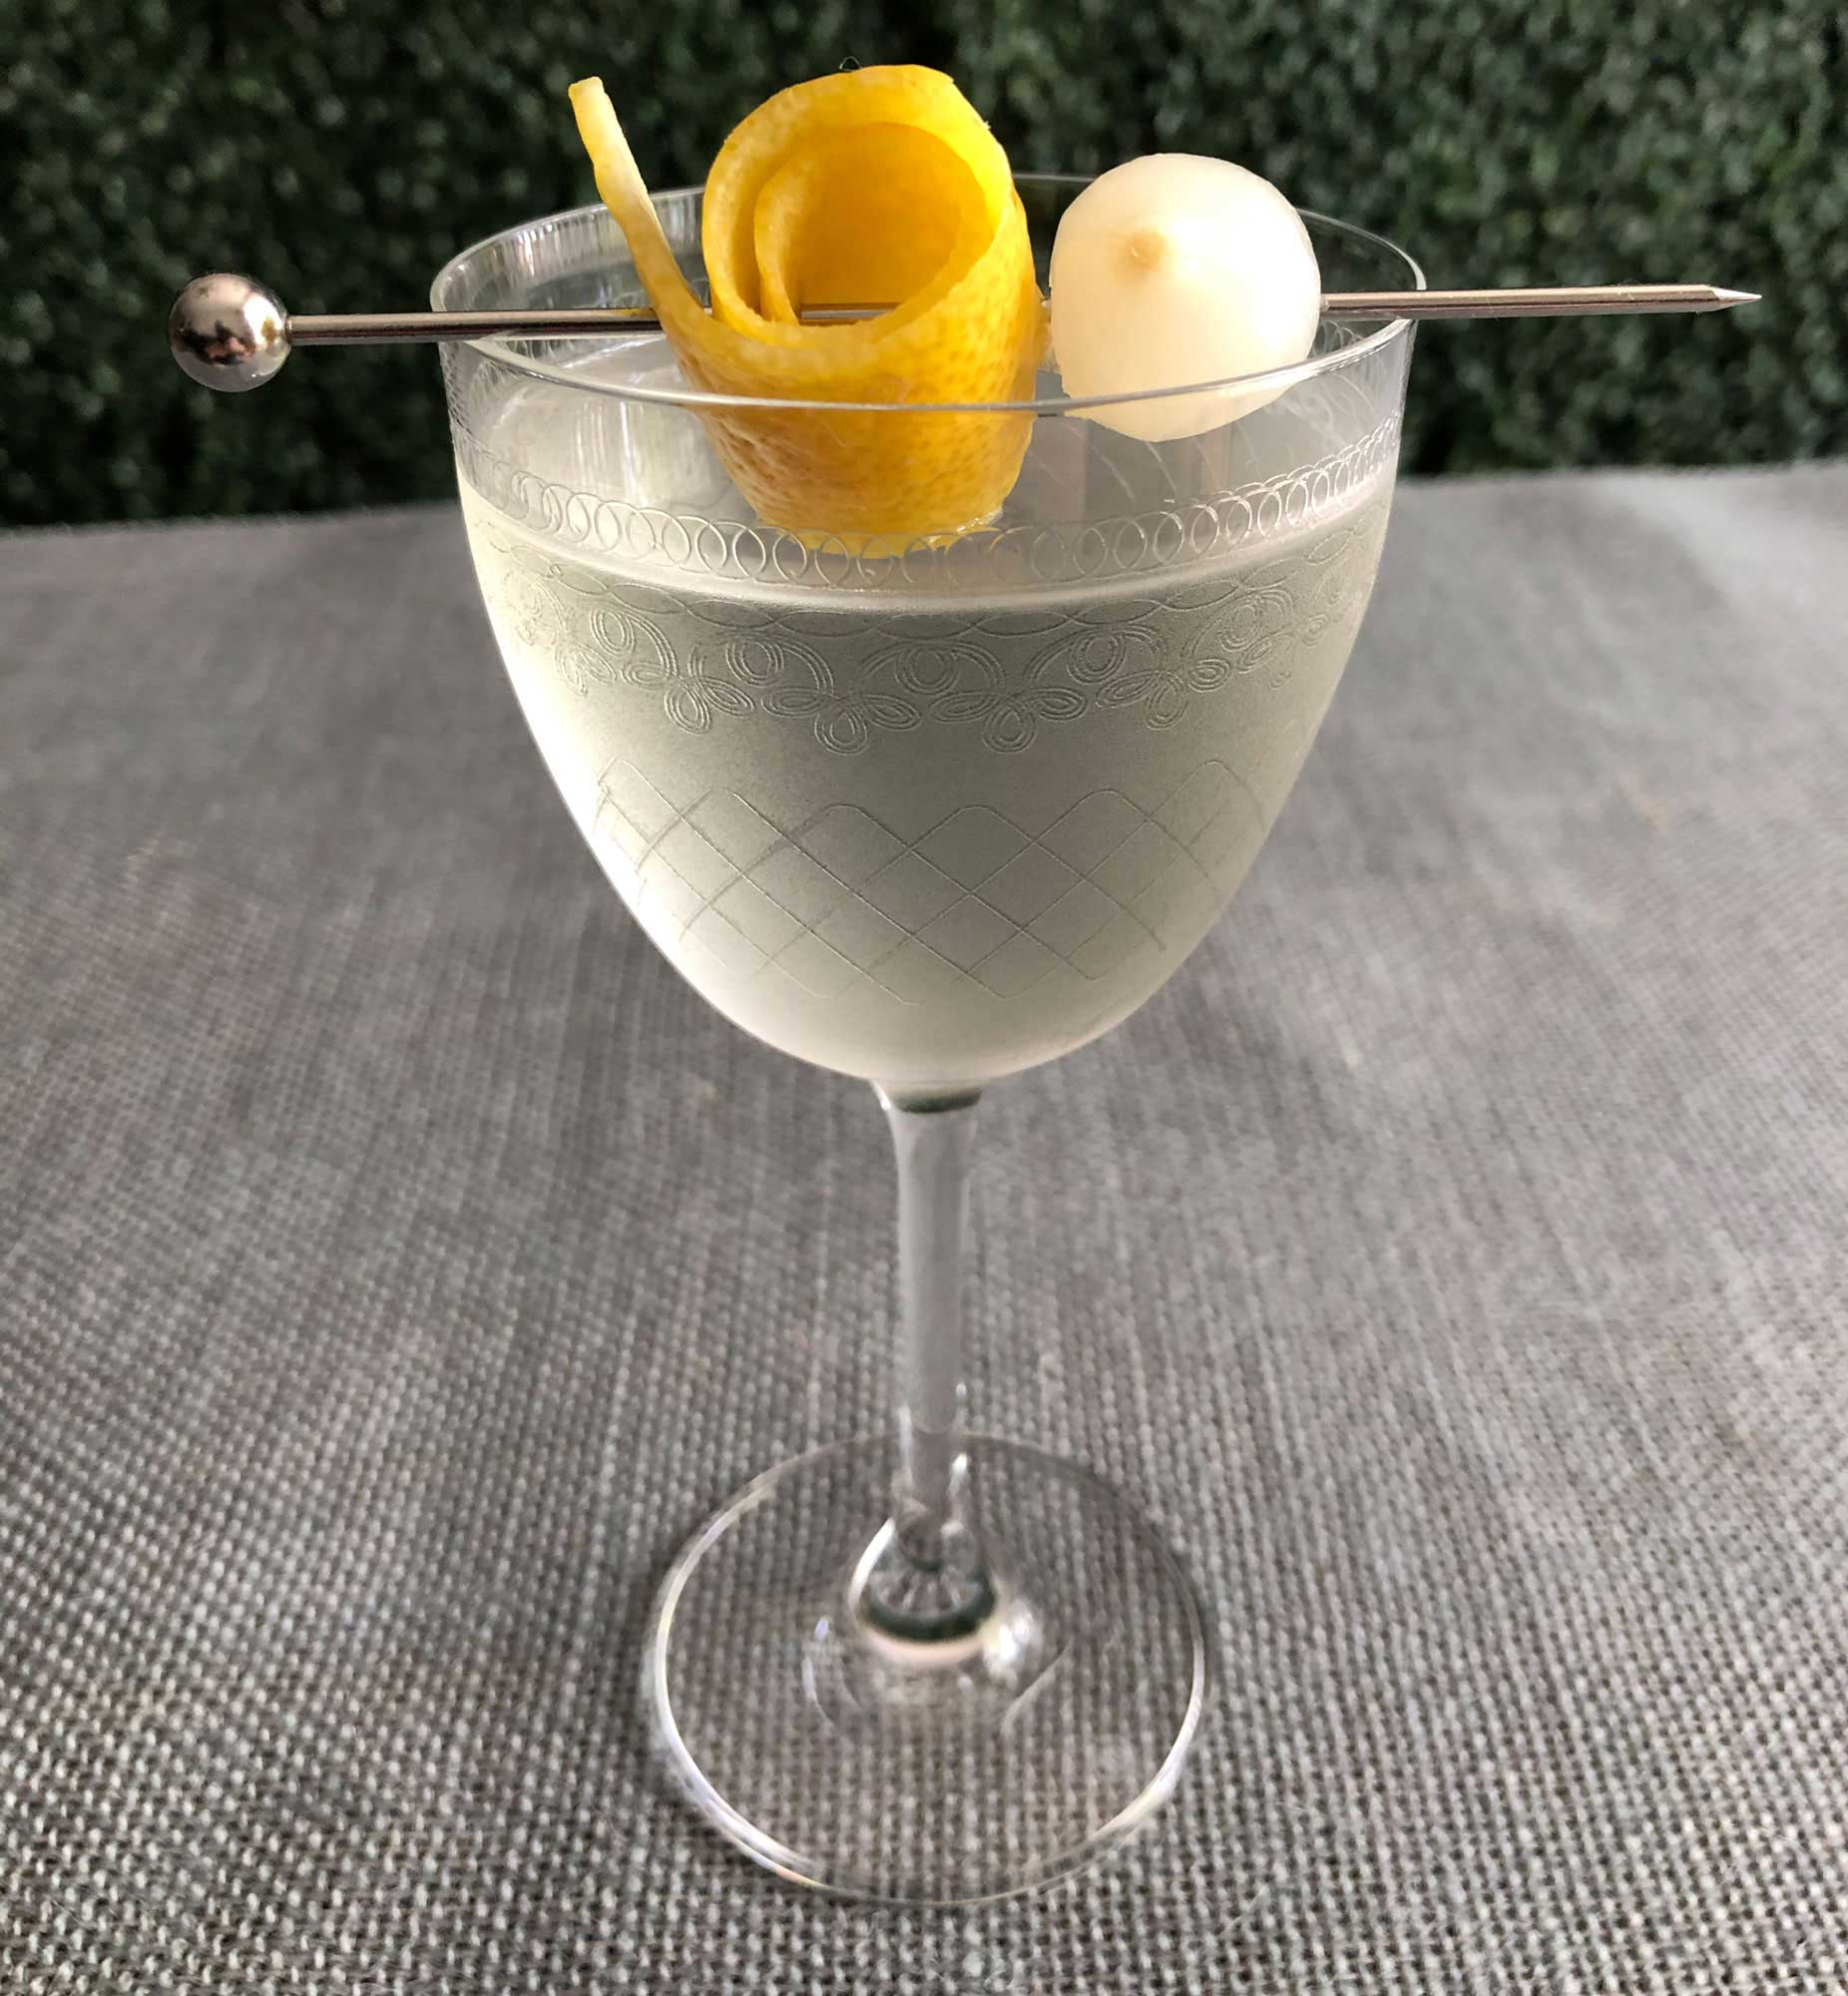 An example of the Roslyn Cocktail, the mixed drink (cocktail) featuring Hayman's London Dry Gin, Comoz Vermouth Blanc, Pernod, and rose water; photo by Lee Edwards